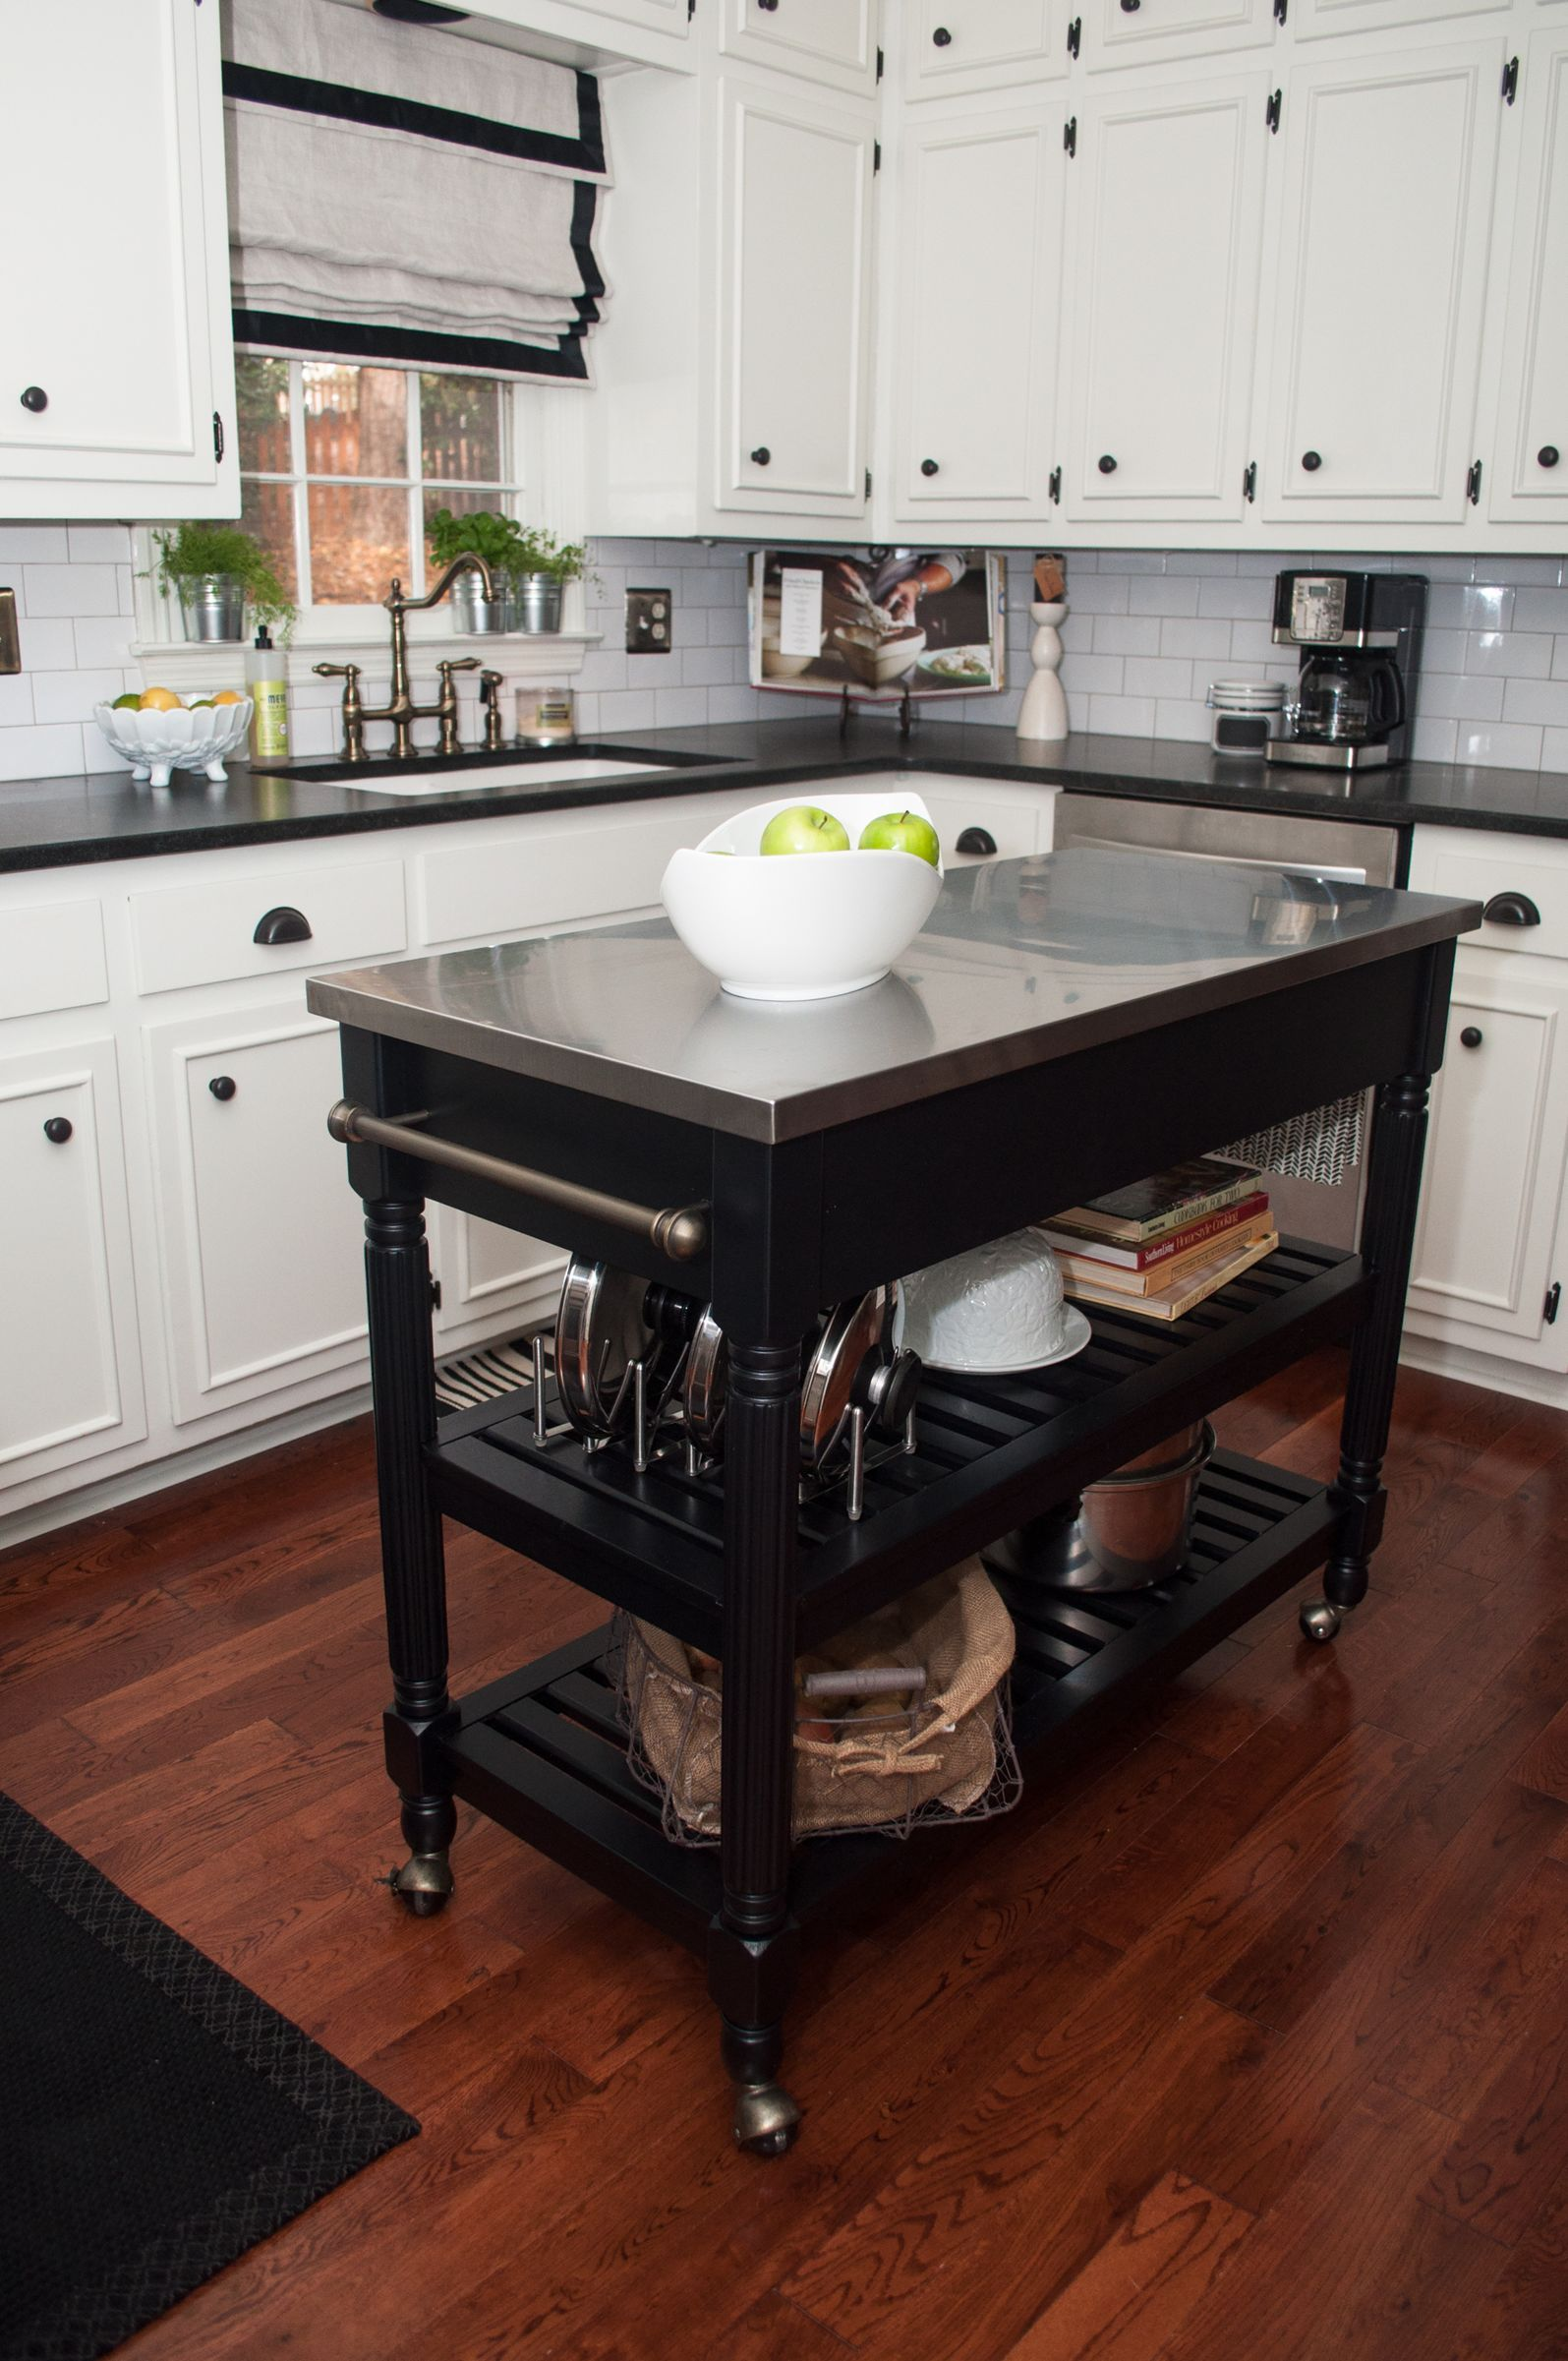 10 Types of Small Kitchen Islands on Wheels | Small white kitchens ...